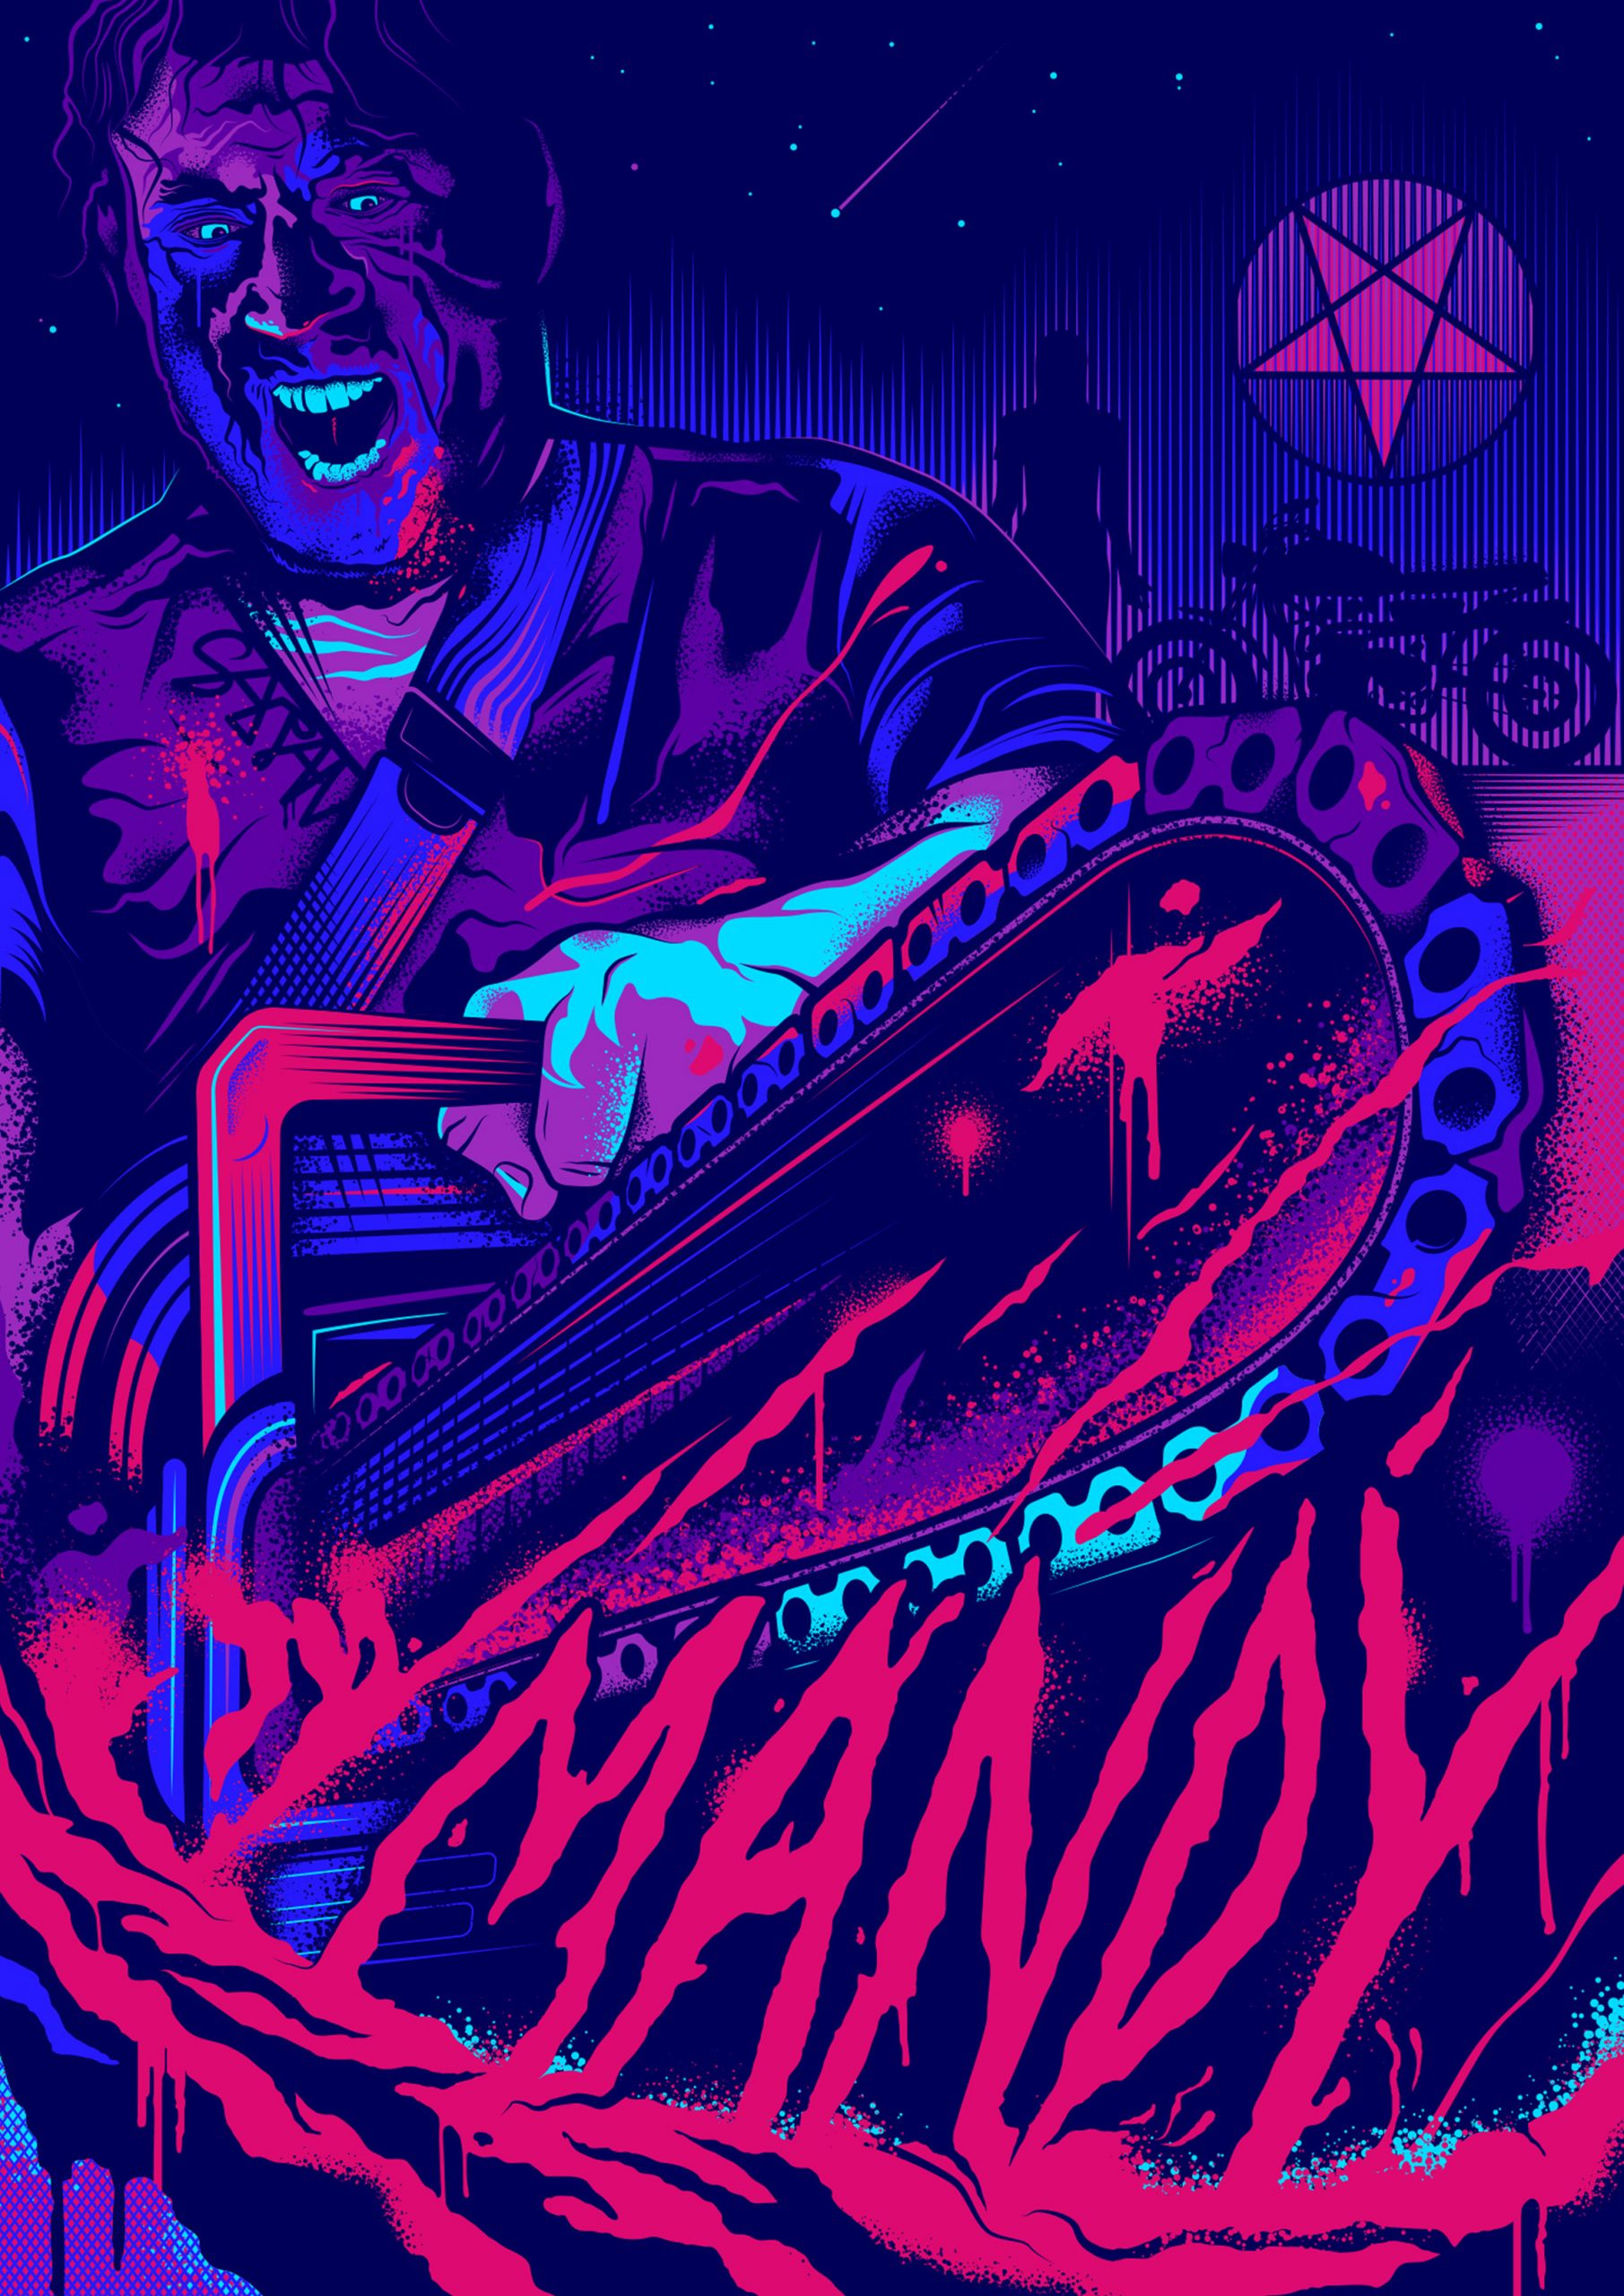 Mandy Alternative Movie Poster